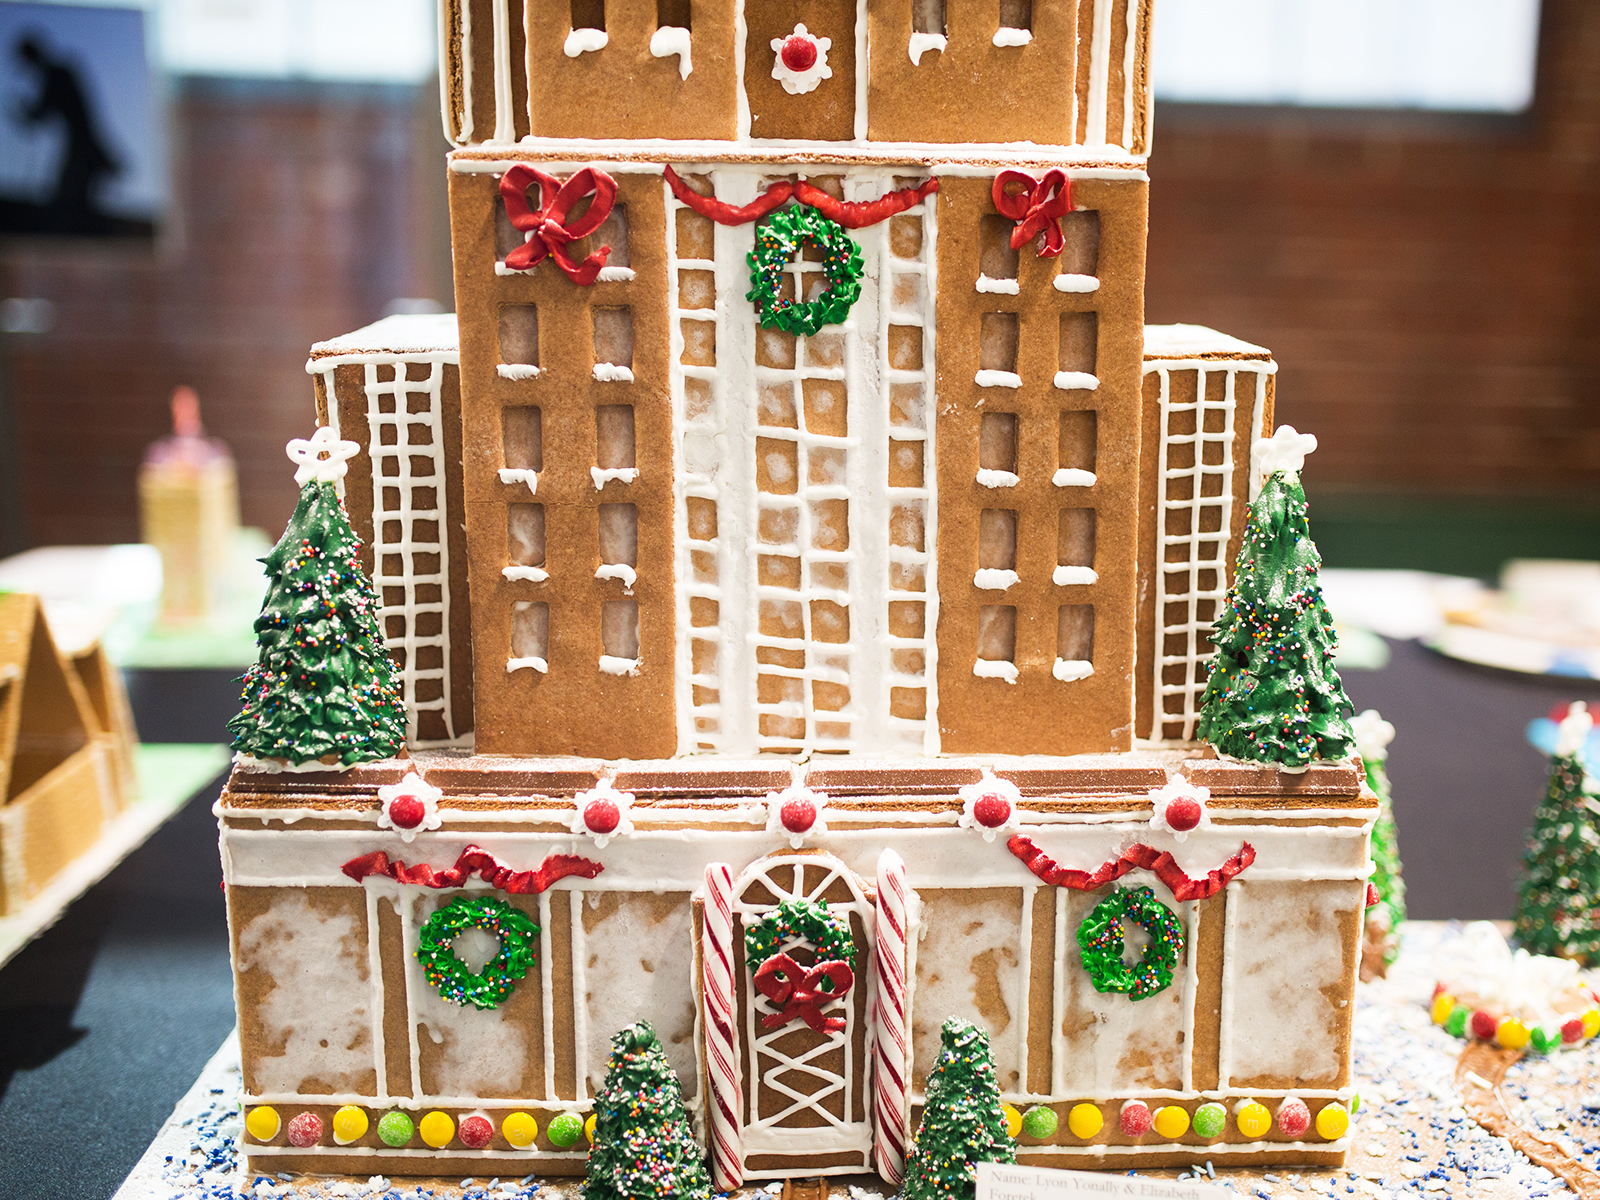 10 Gingerbread-ified Versions of Famous Landmarks From Around the Globe